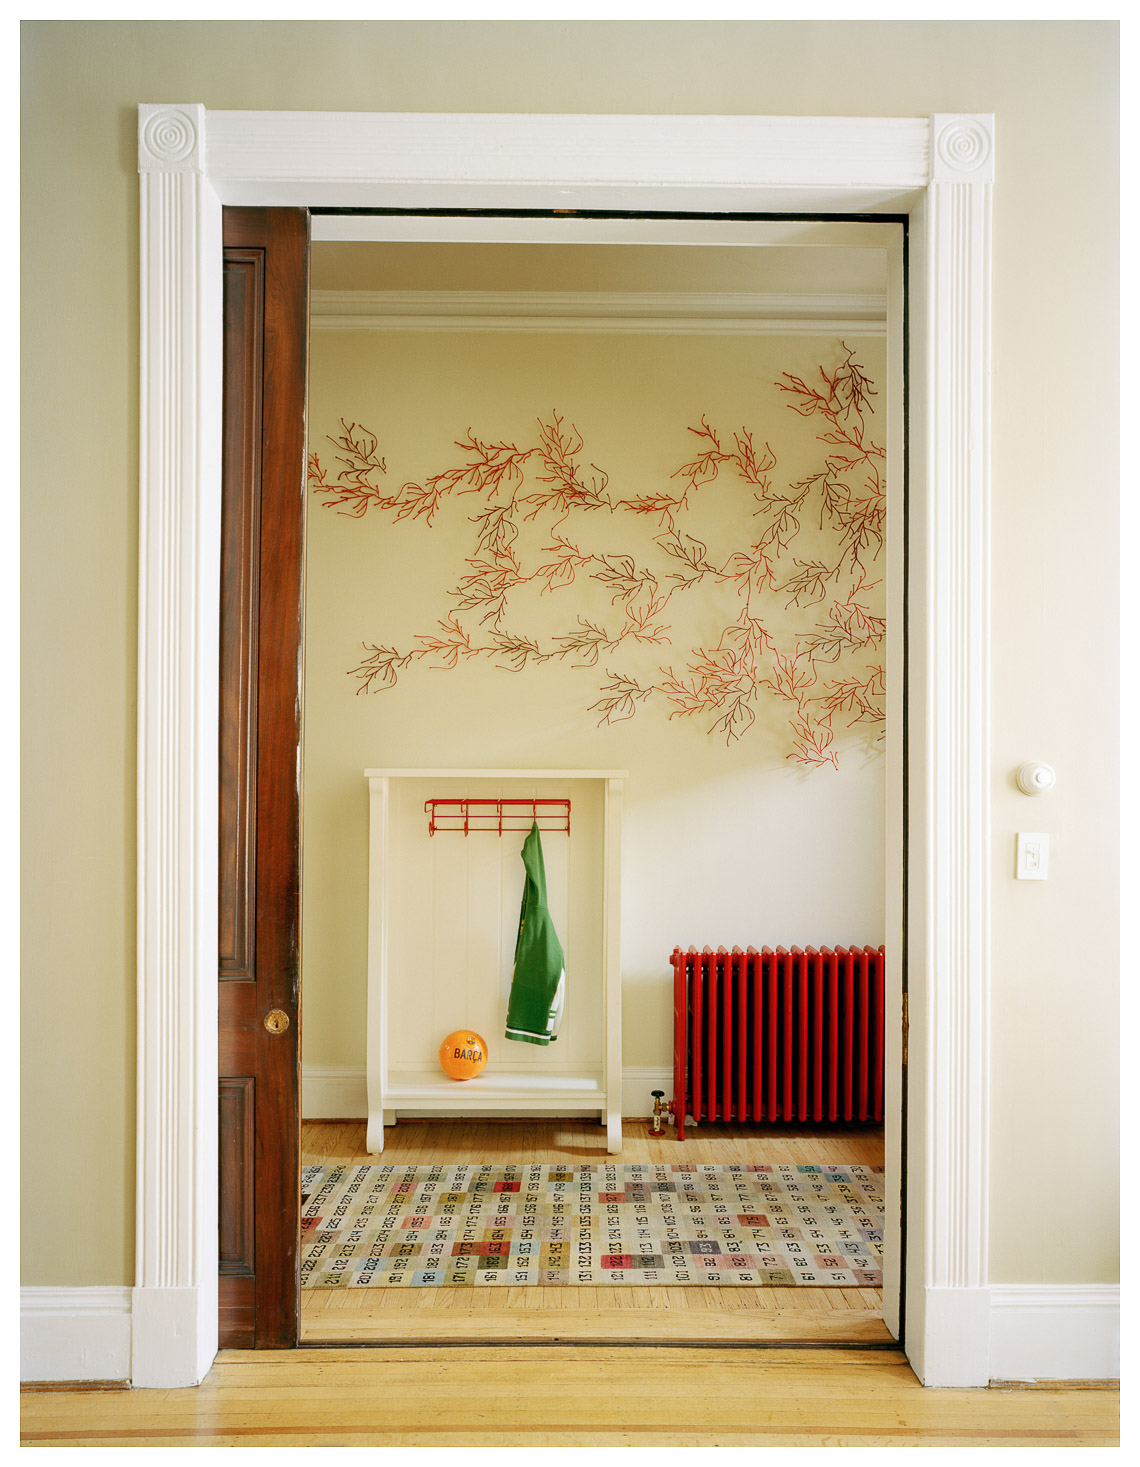 Baltimore Interior | Bolton Hill | Brian Park Photo New York | 7